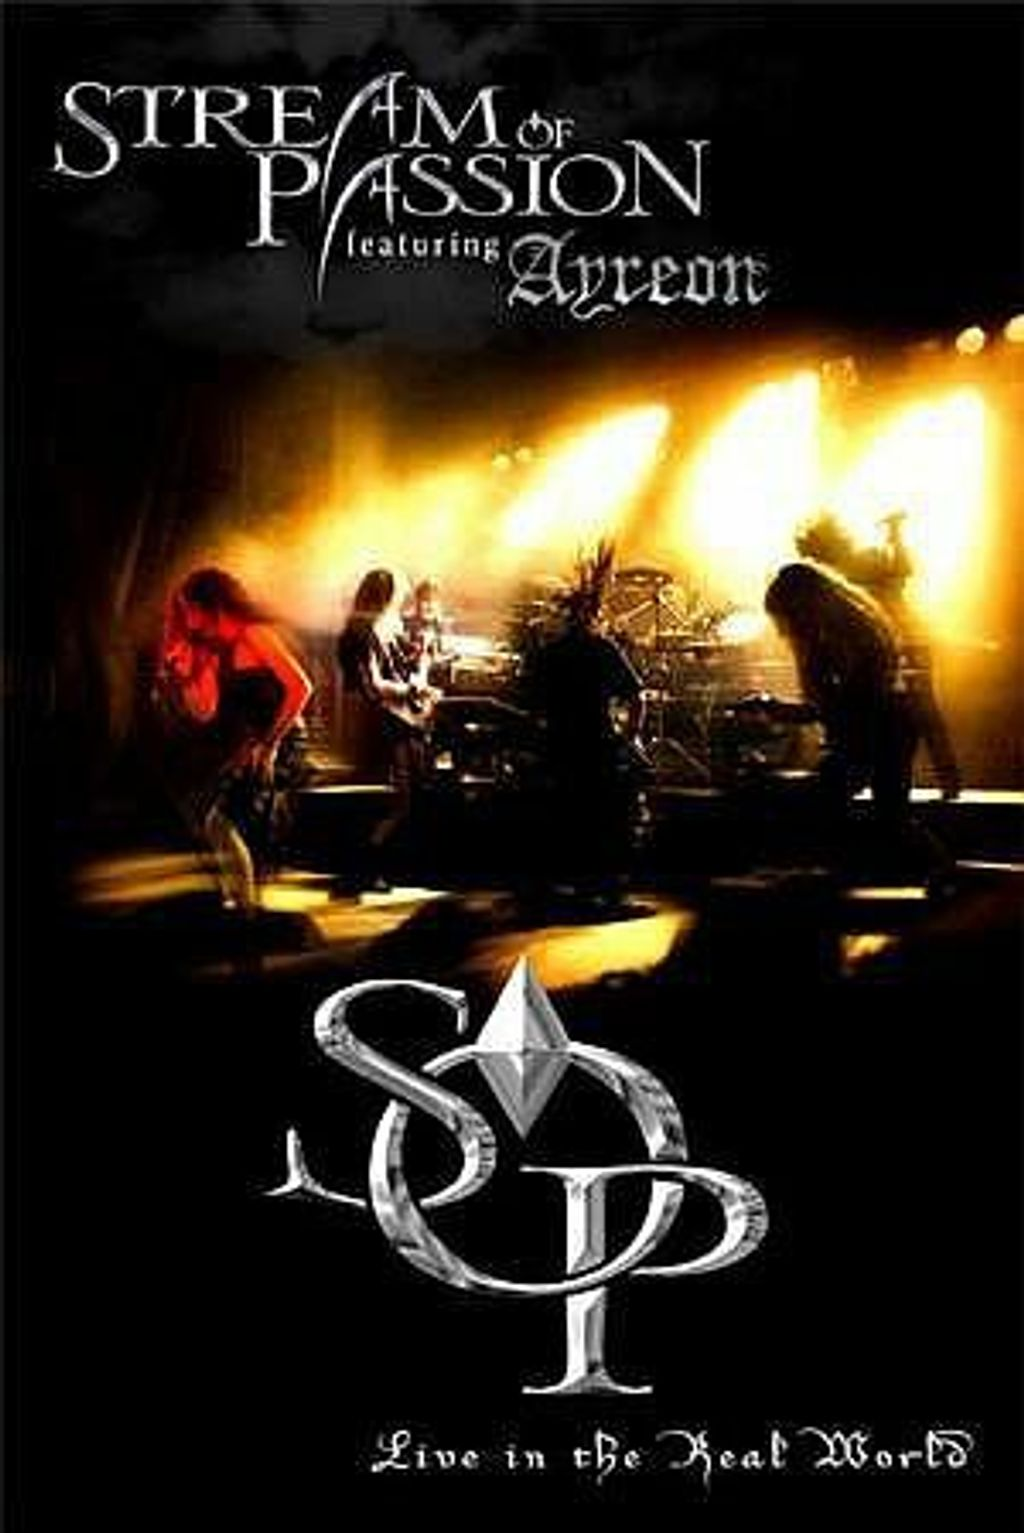 STREAM OF PASSION Featuring AYREON Live In The Real World DVD.jpg